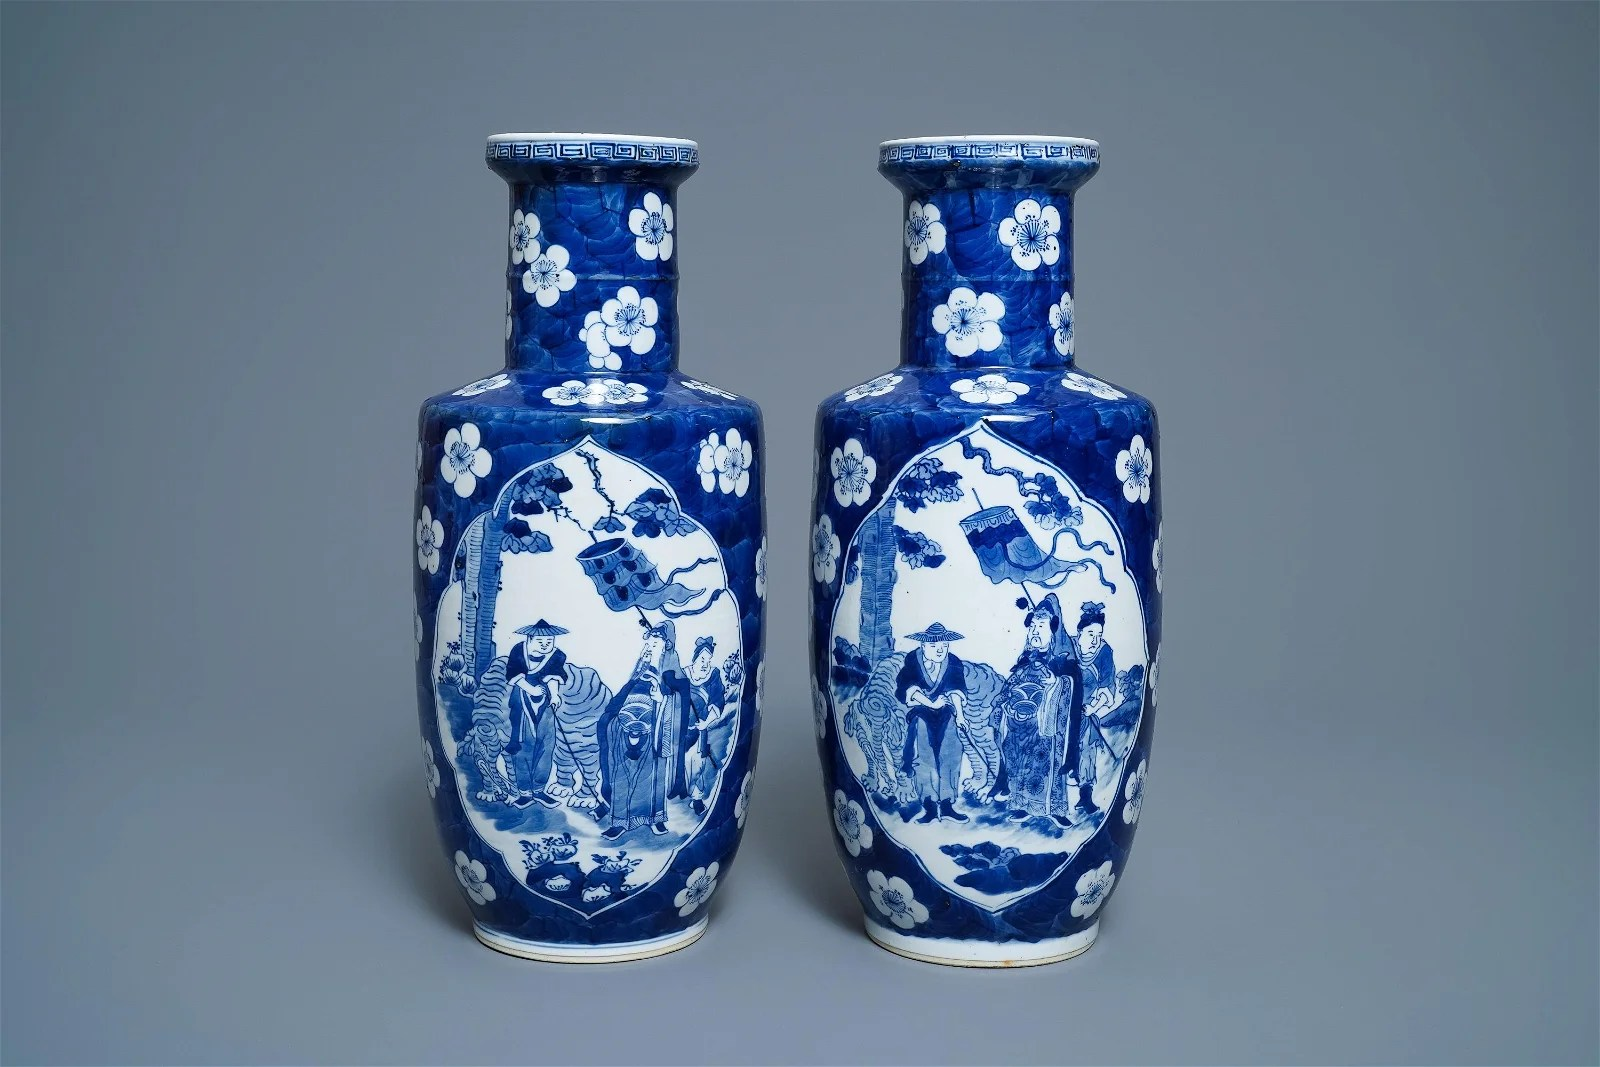 A pair of Chinese blue and white rouleau vases with